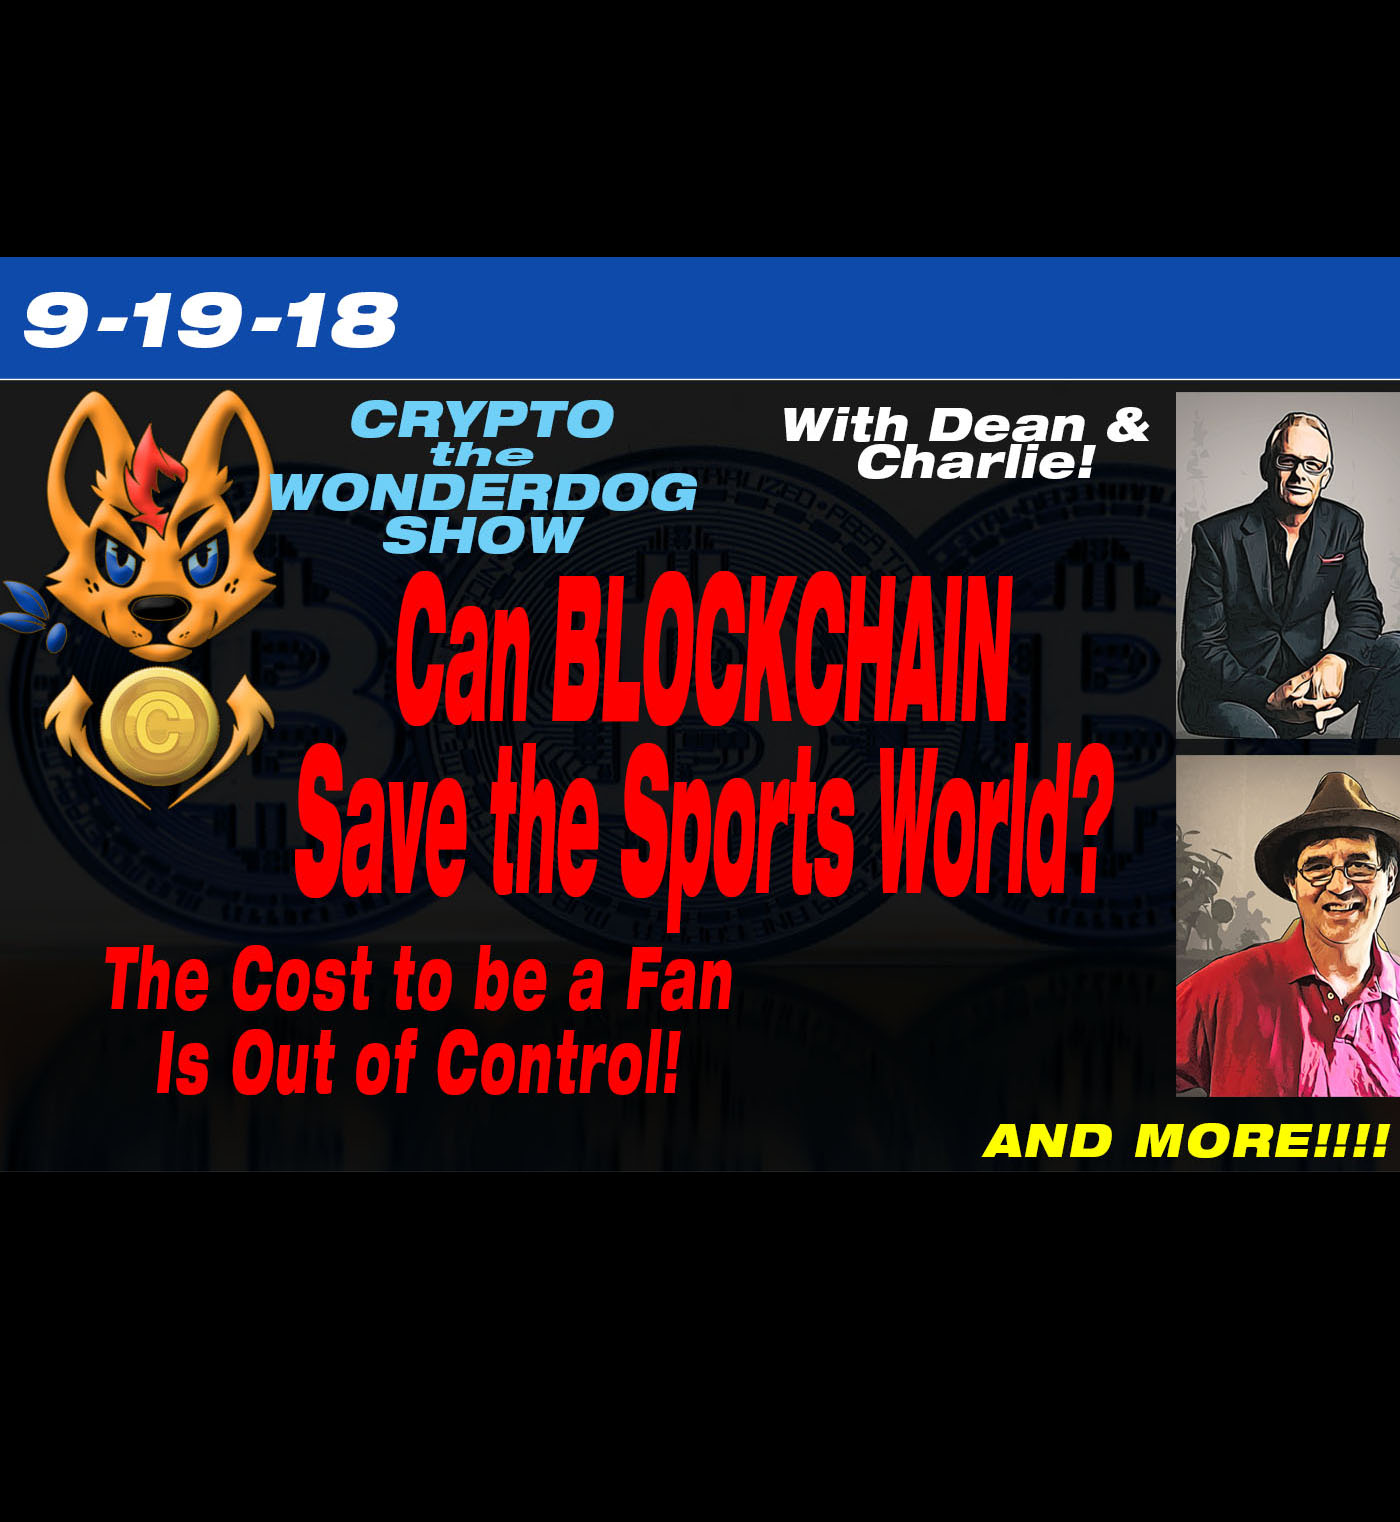 9-19-18 - Dean and Charlie - Sports and Blockchain - Can Blockchain Solve the Sports Industry? Is it getting to be too expensive to be a Fan?? and MORE!